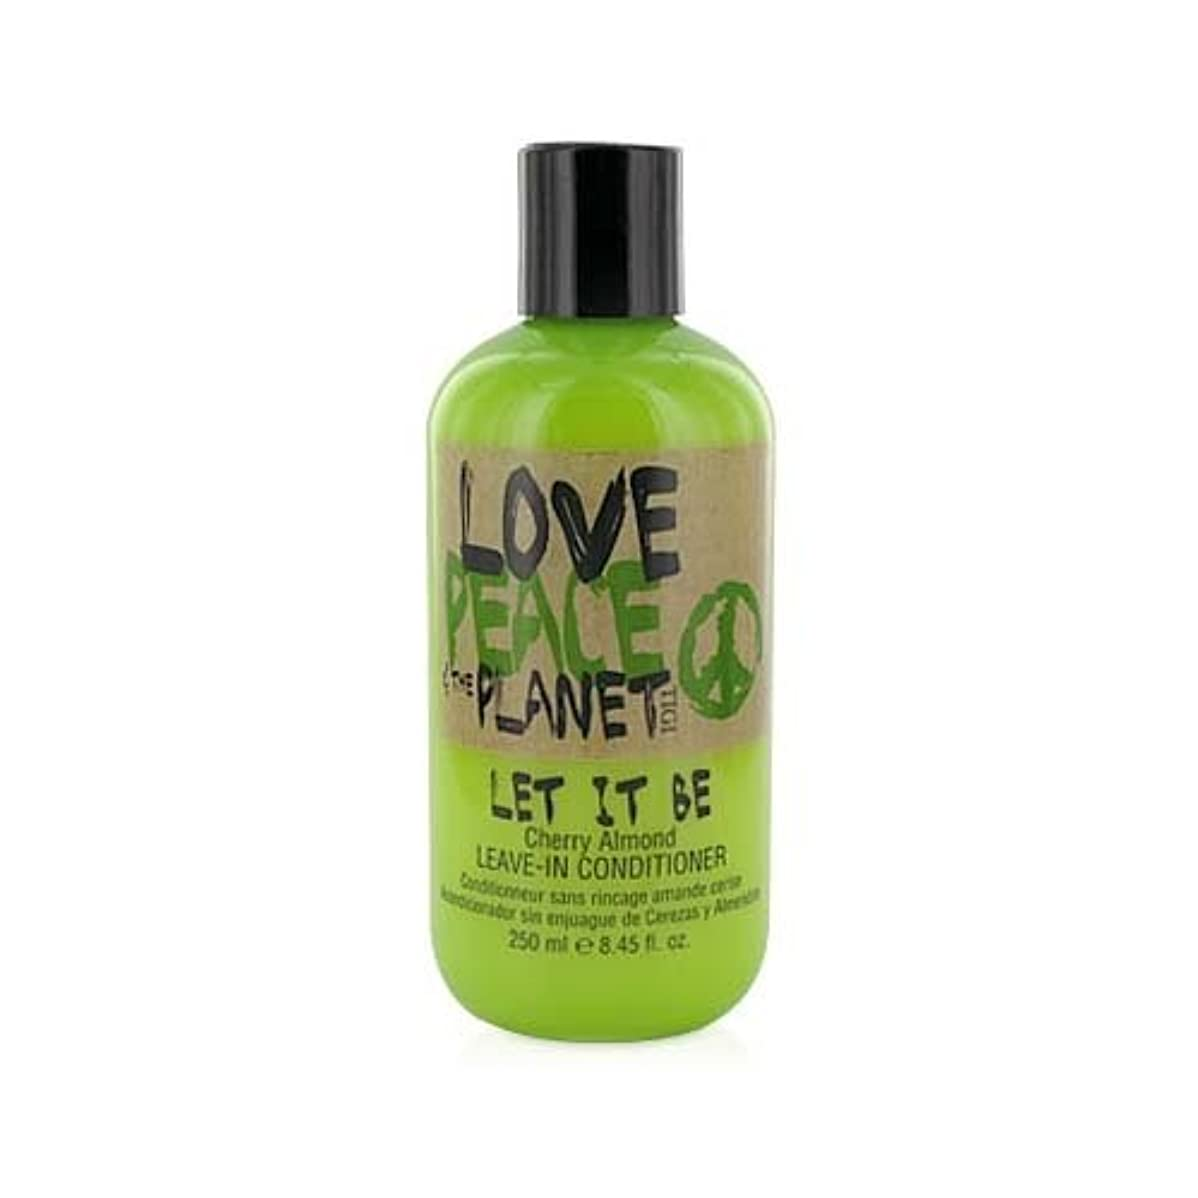 活気づく加速するによってTIGI Love Peace and The Planet Let It Be Cherry Almond Leave-in Conditioner 250 ml (並行輸入品)